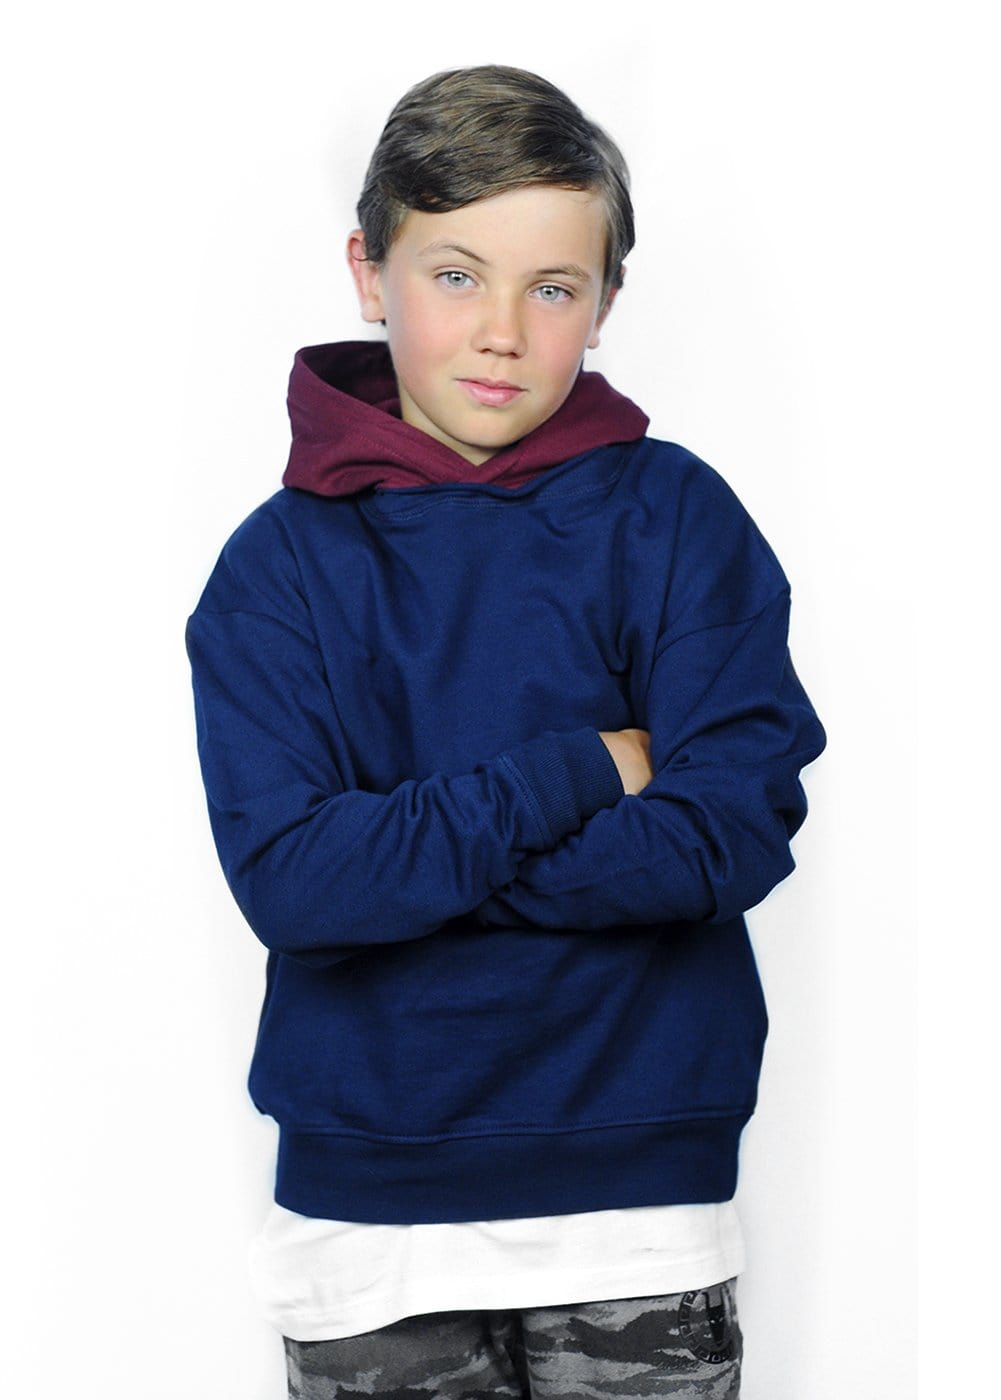 Teenzshop Youth Boys Navy Burgundy Nathaniel Hoodie